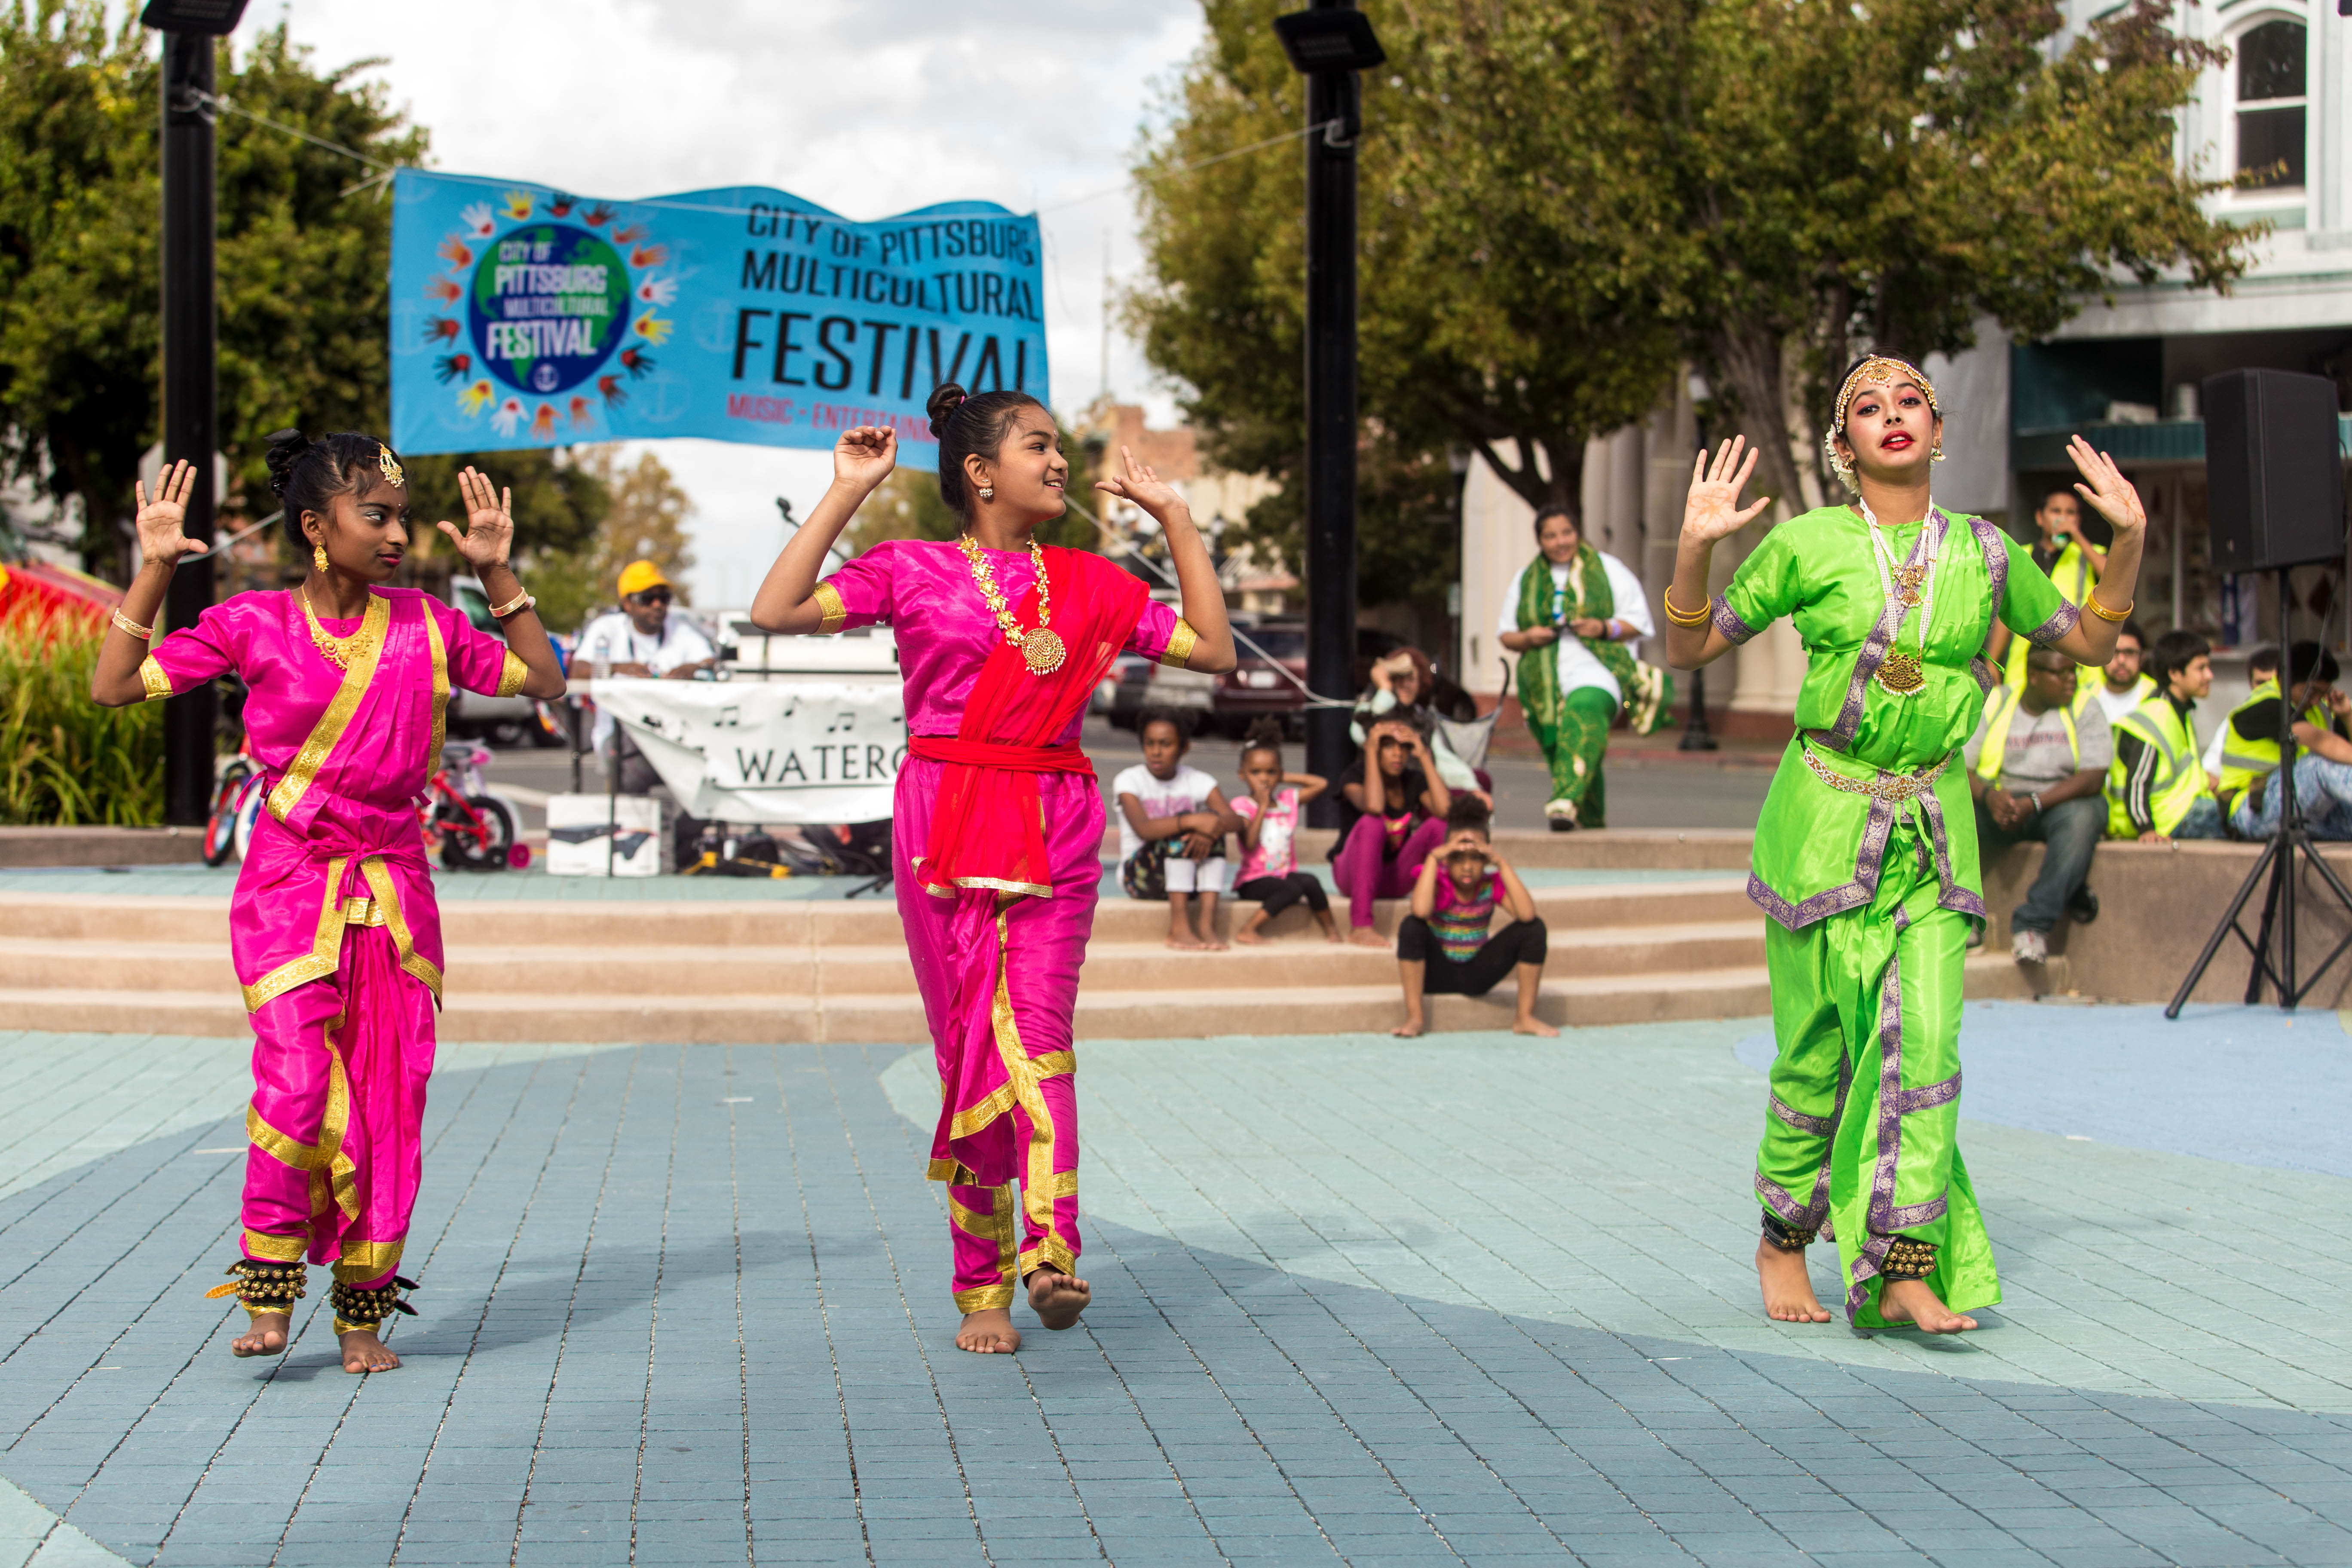 CITY_PITTSBURG_MULTICULTURAL_OCTOBER_2016 (568)